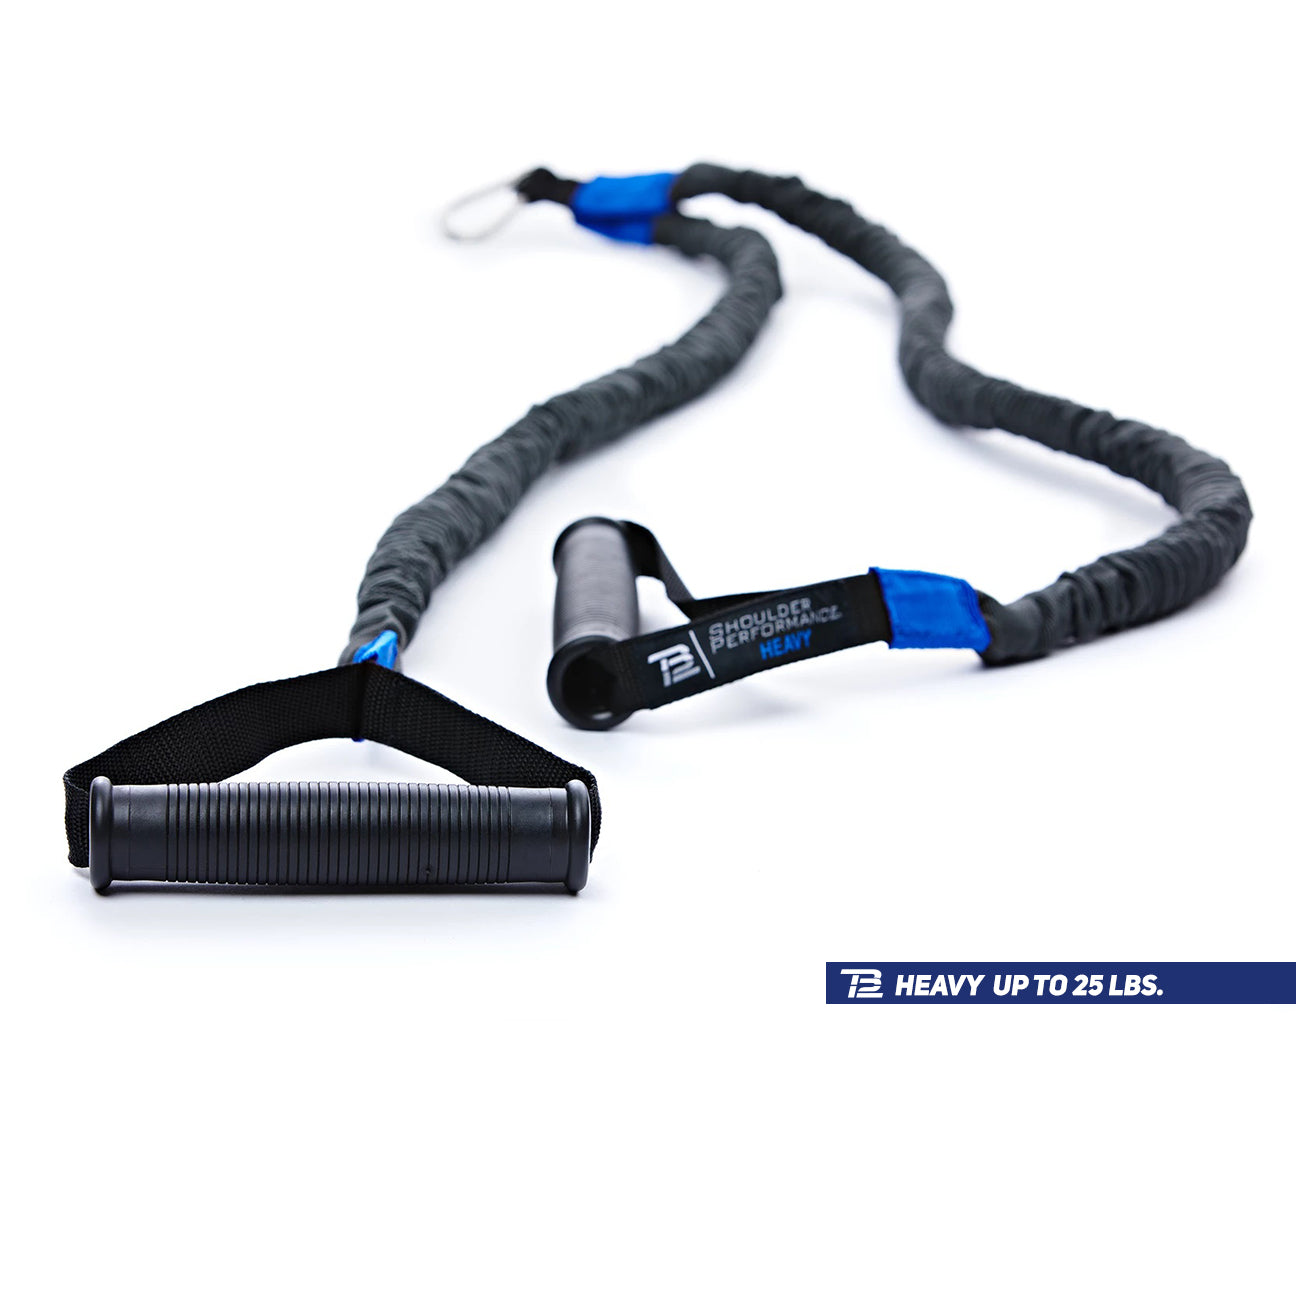 TB12™ Handle Resistance Band Kit